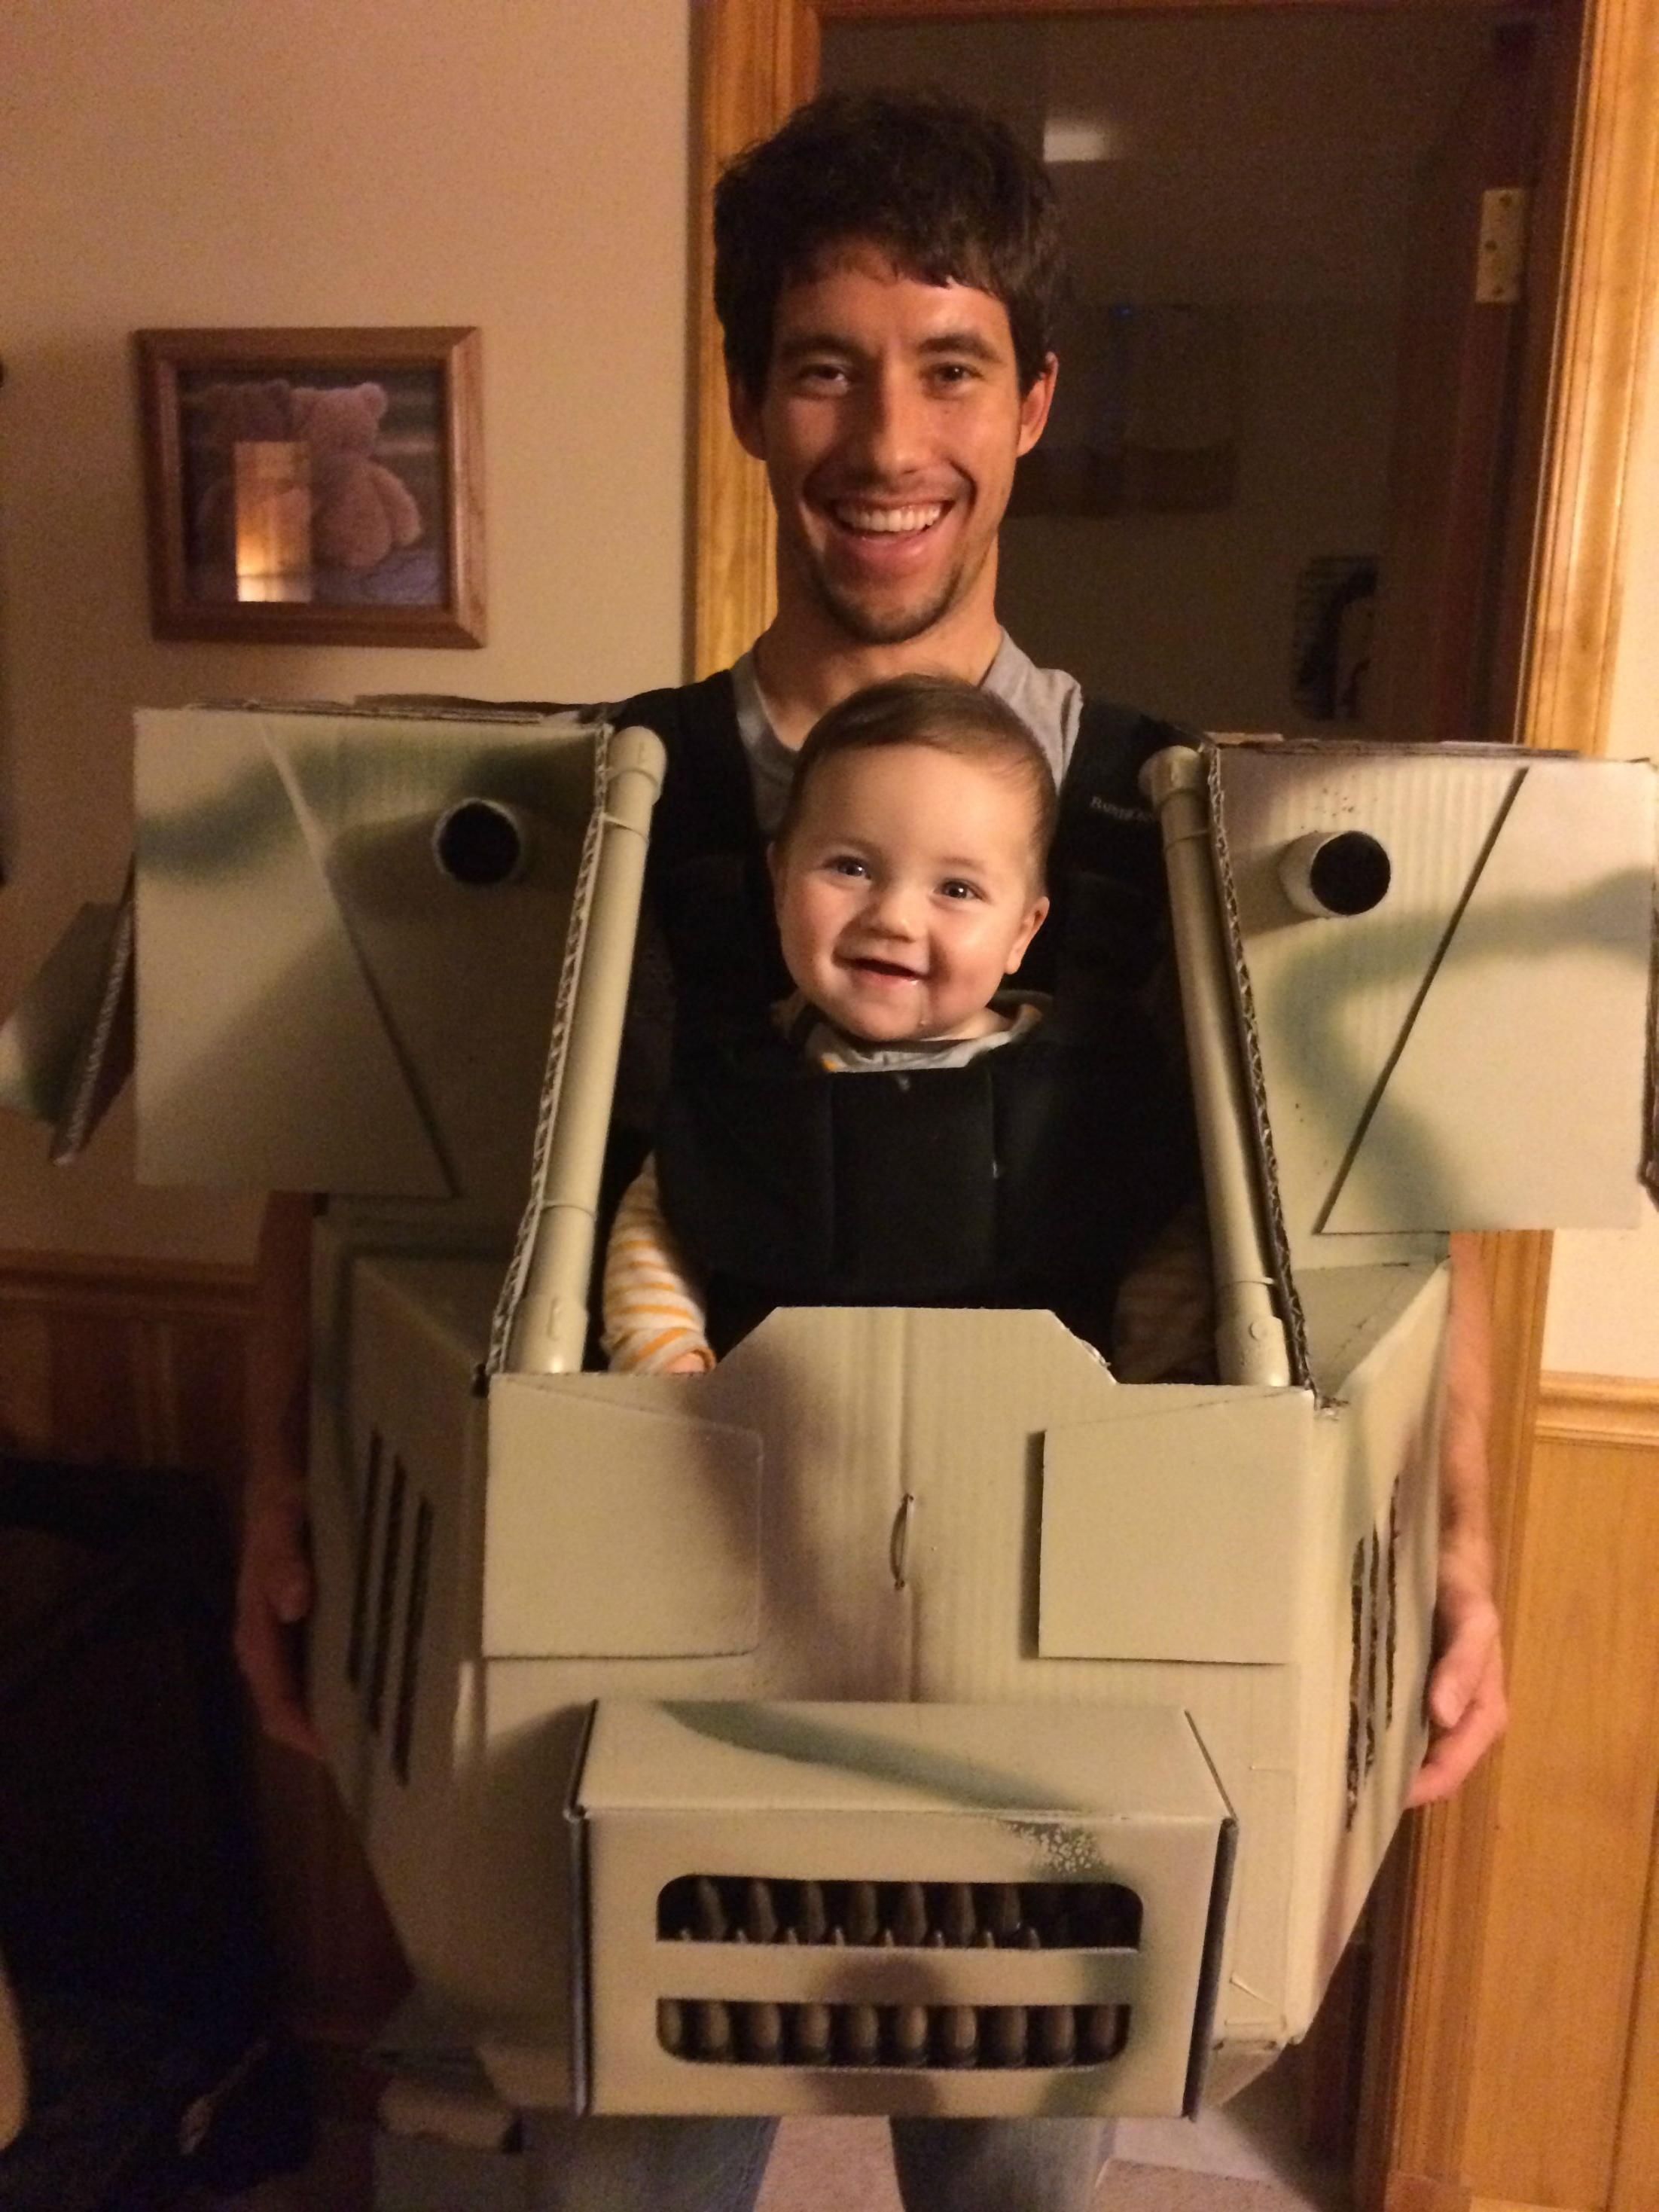 This Father Makes The Most Epic Halloween Costume For His Son And Now I Want One  sc 1 st  Pinterest & This Father Makes The Most Epic Halloween Costume For His Son And ...